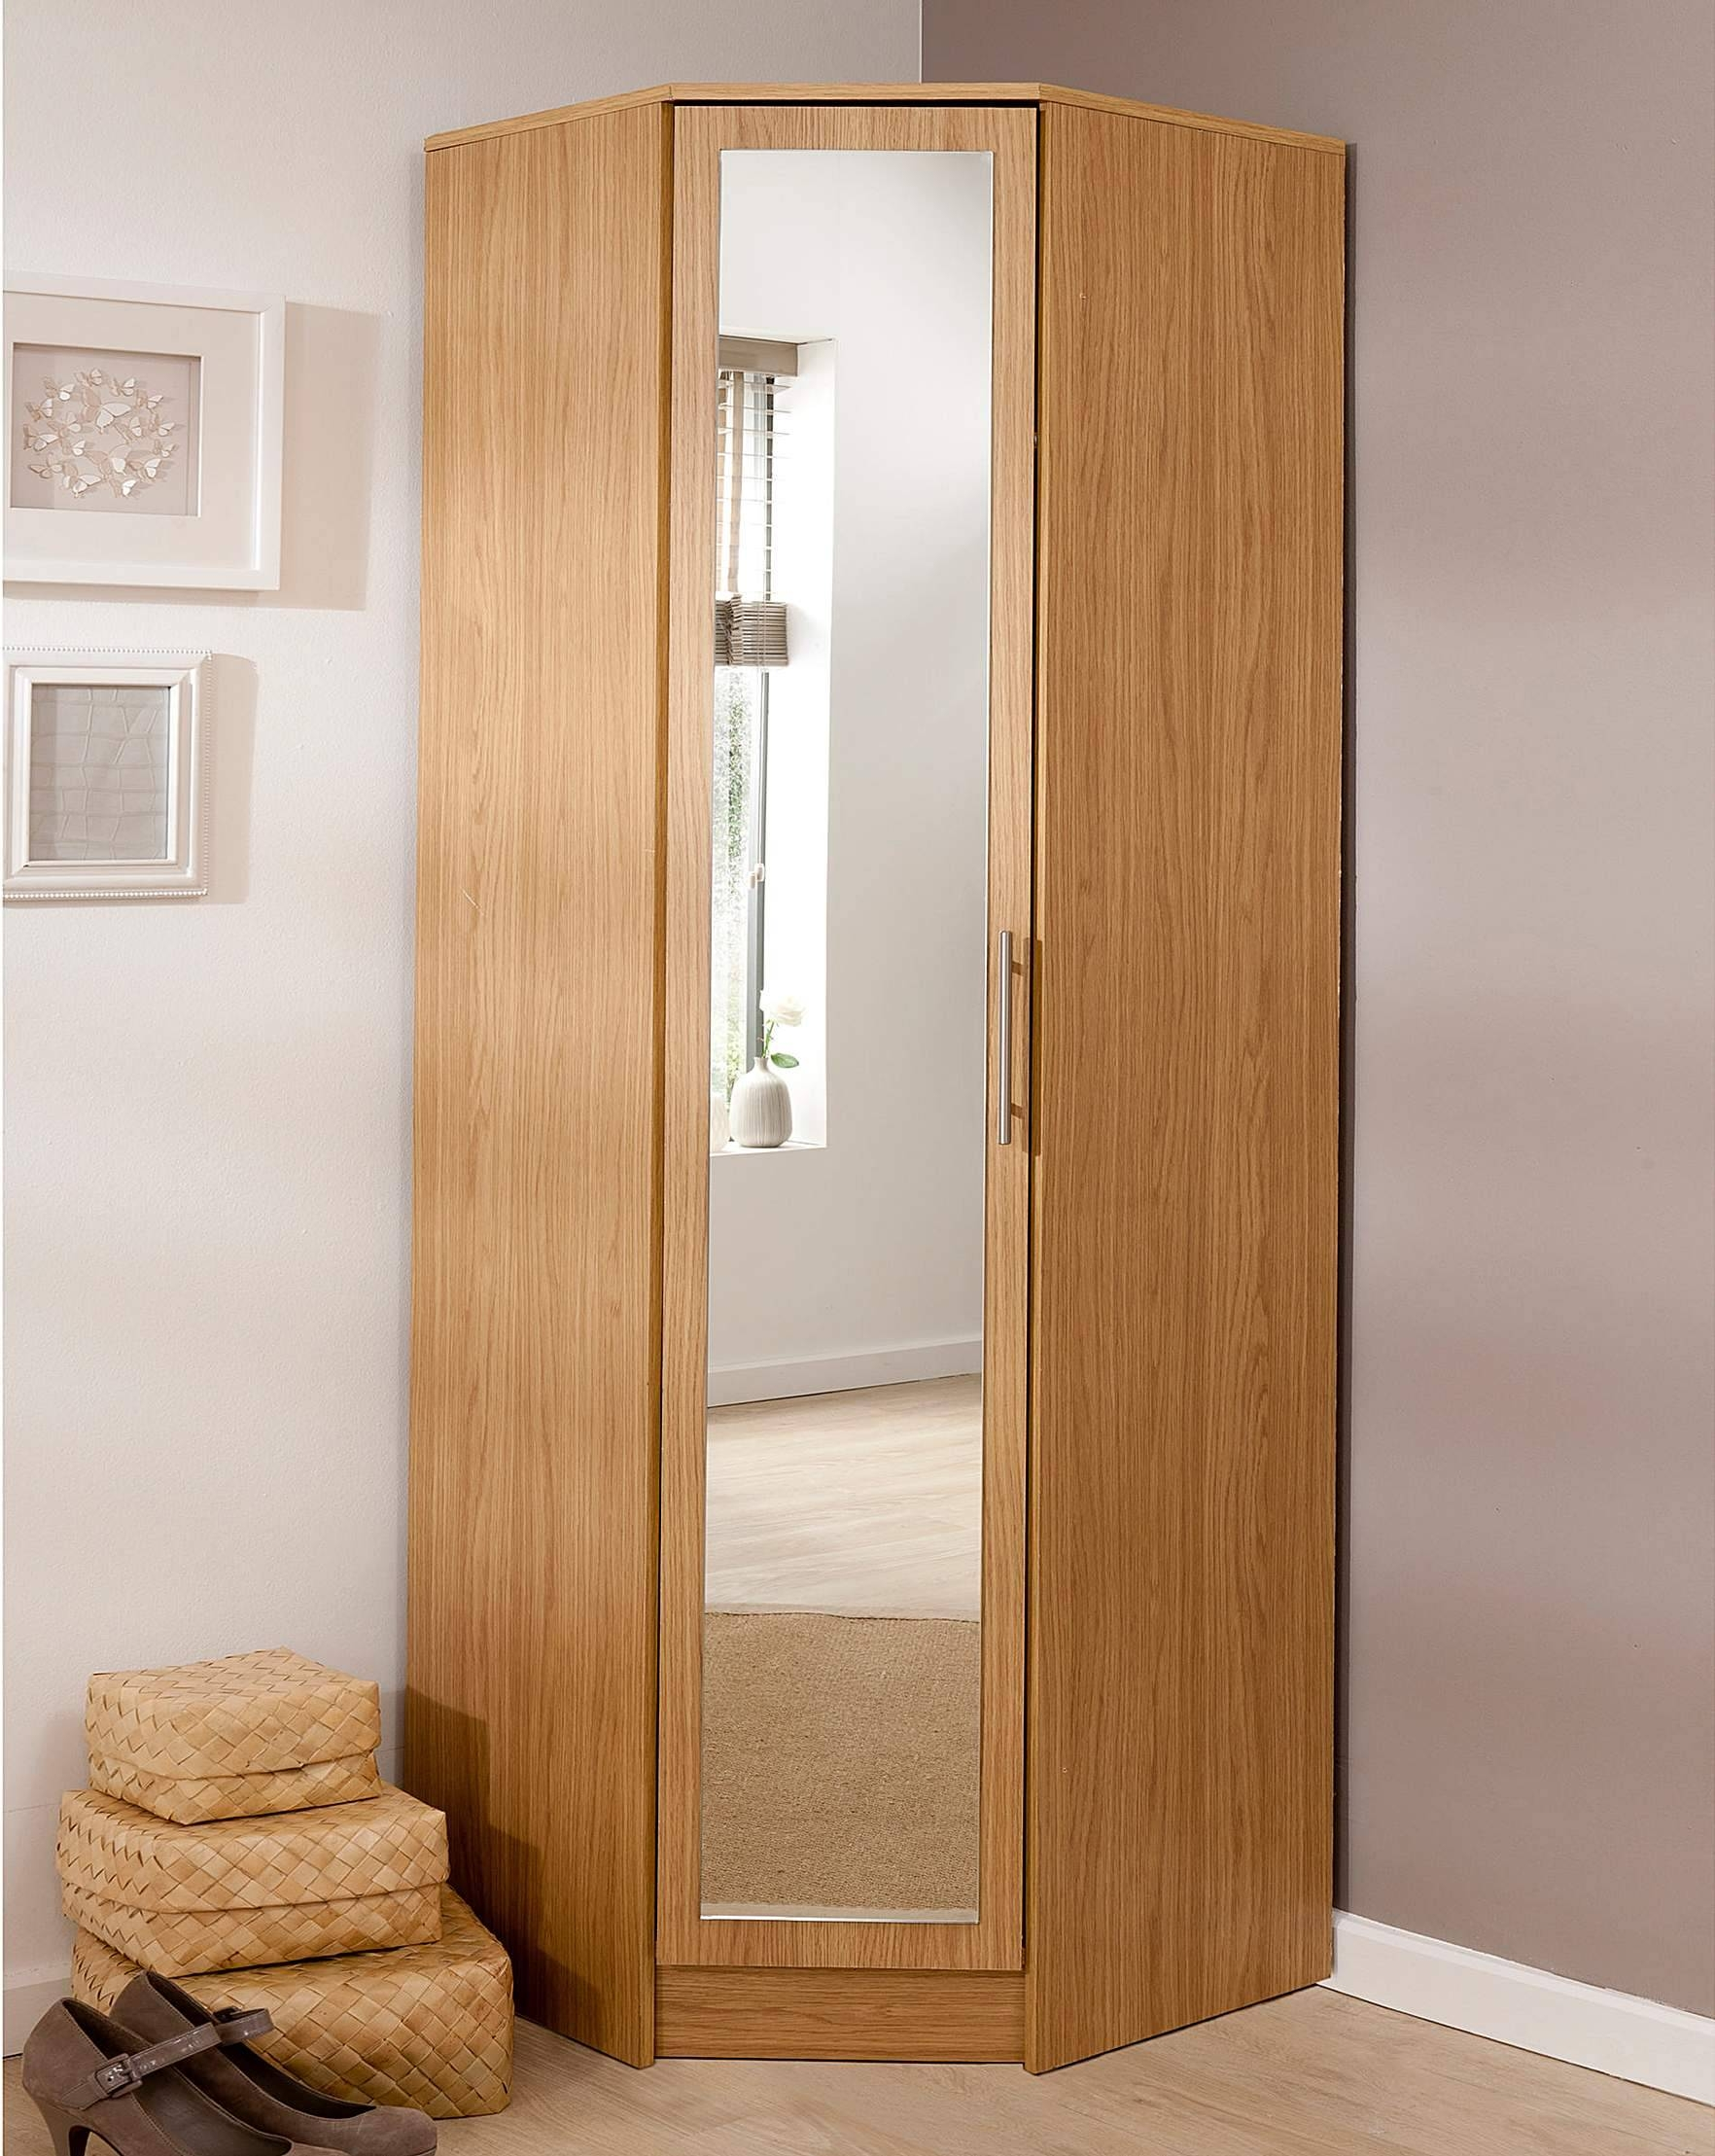 Helsinki Corner Wardrobe With Mirror | J D Williams with Cheap Corner Wardrobes (Image 12 of 15)